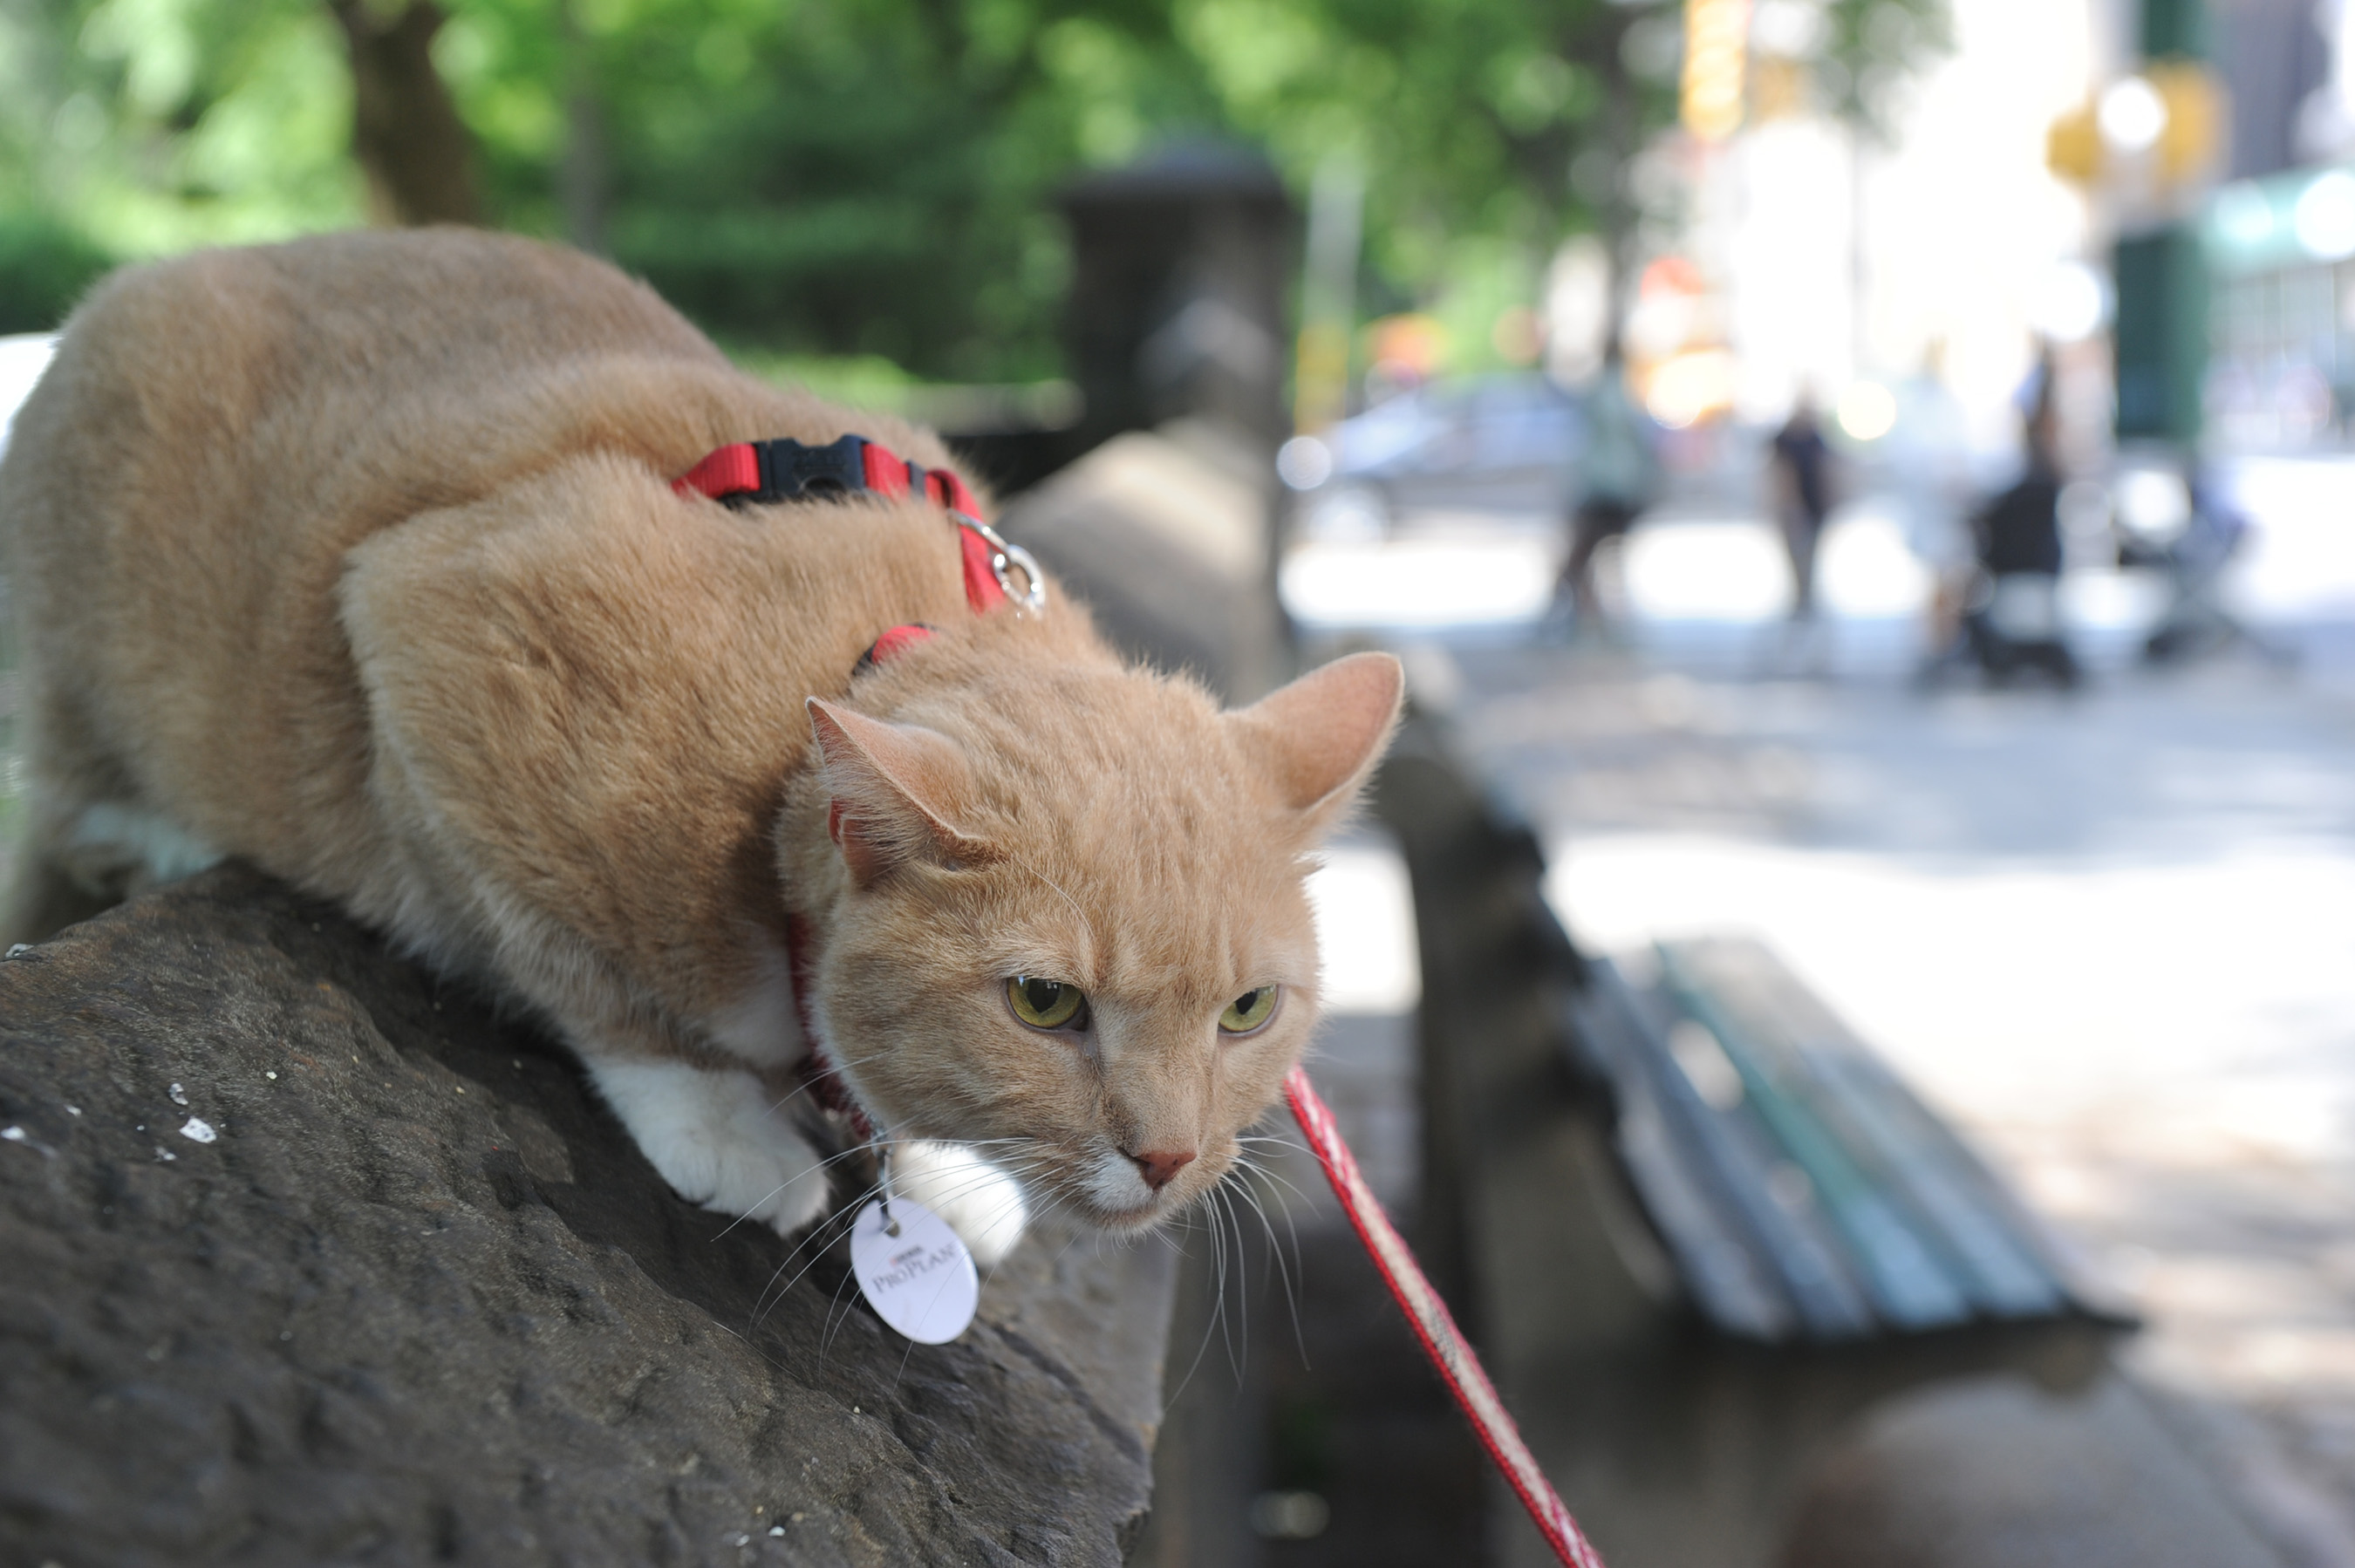 """Purina Pro Plan and Adventure Cats are helping cat owners safely explore the outdoors for National """"Take Your Cat On An Adventure"""" Day on June 15. (Diane Bondareff/AP Images for Purina Pro Plan)"""